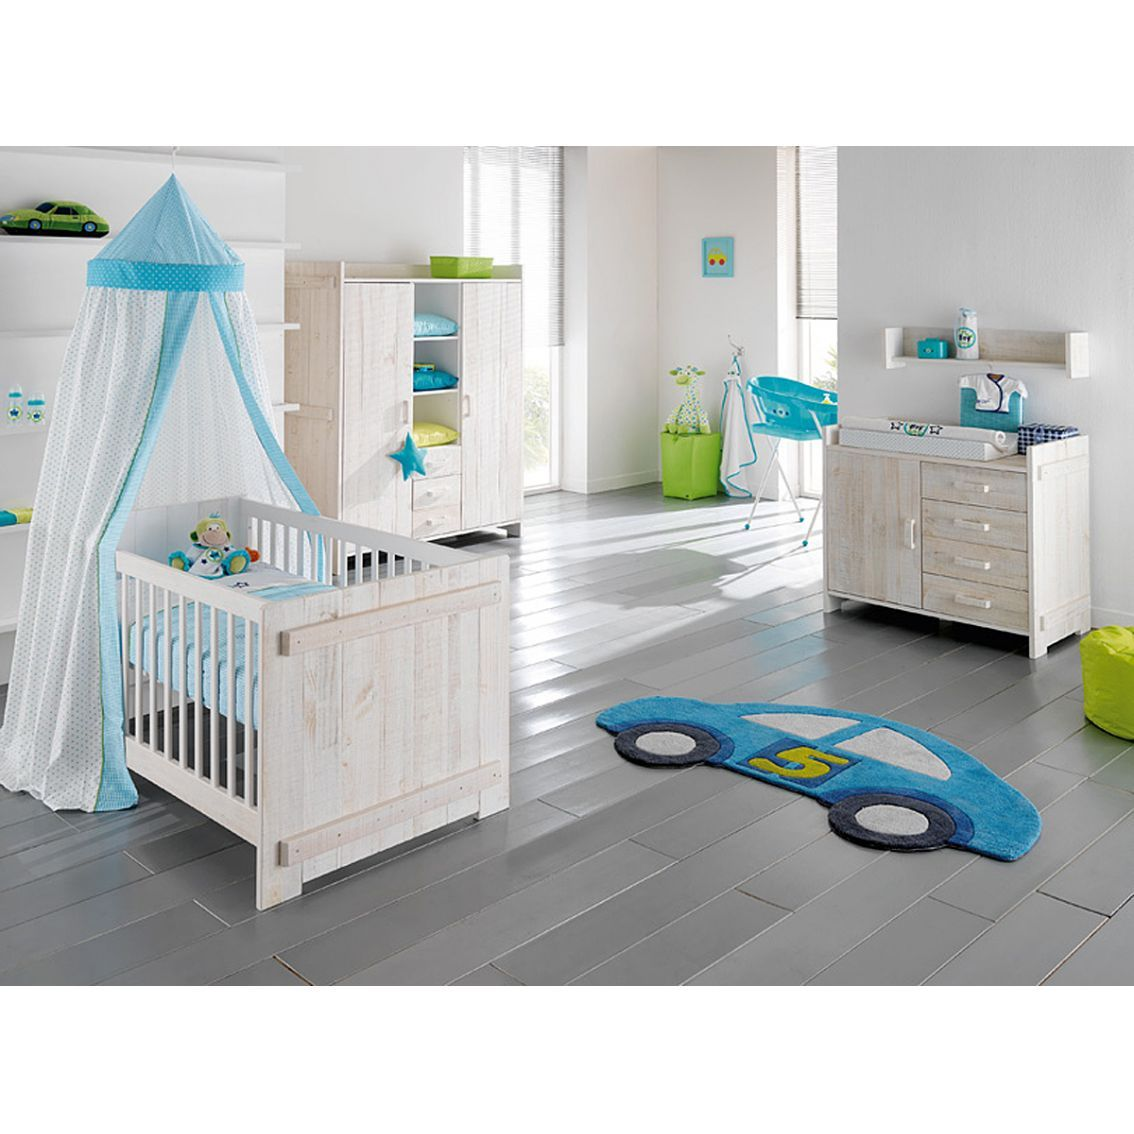 Europe Baby Jelle White Nursery Furniture Set | For my future babies ...